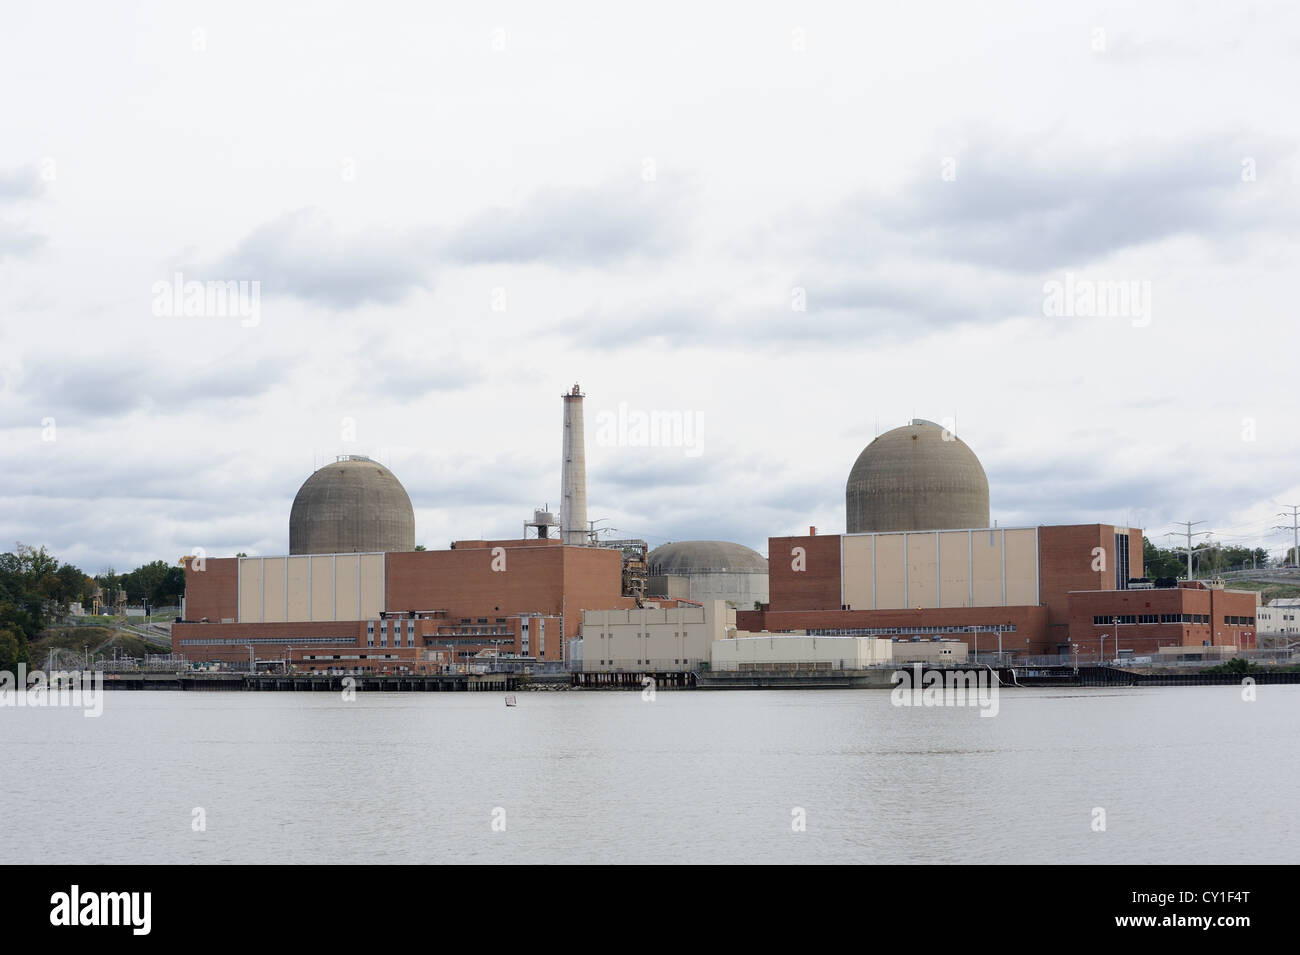 The Indian Point Energy Center is a nuclear facility in Buchanan, N.Y., around 35 miles north of New York City. - Stock Image